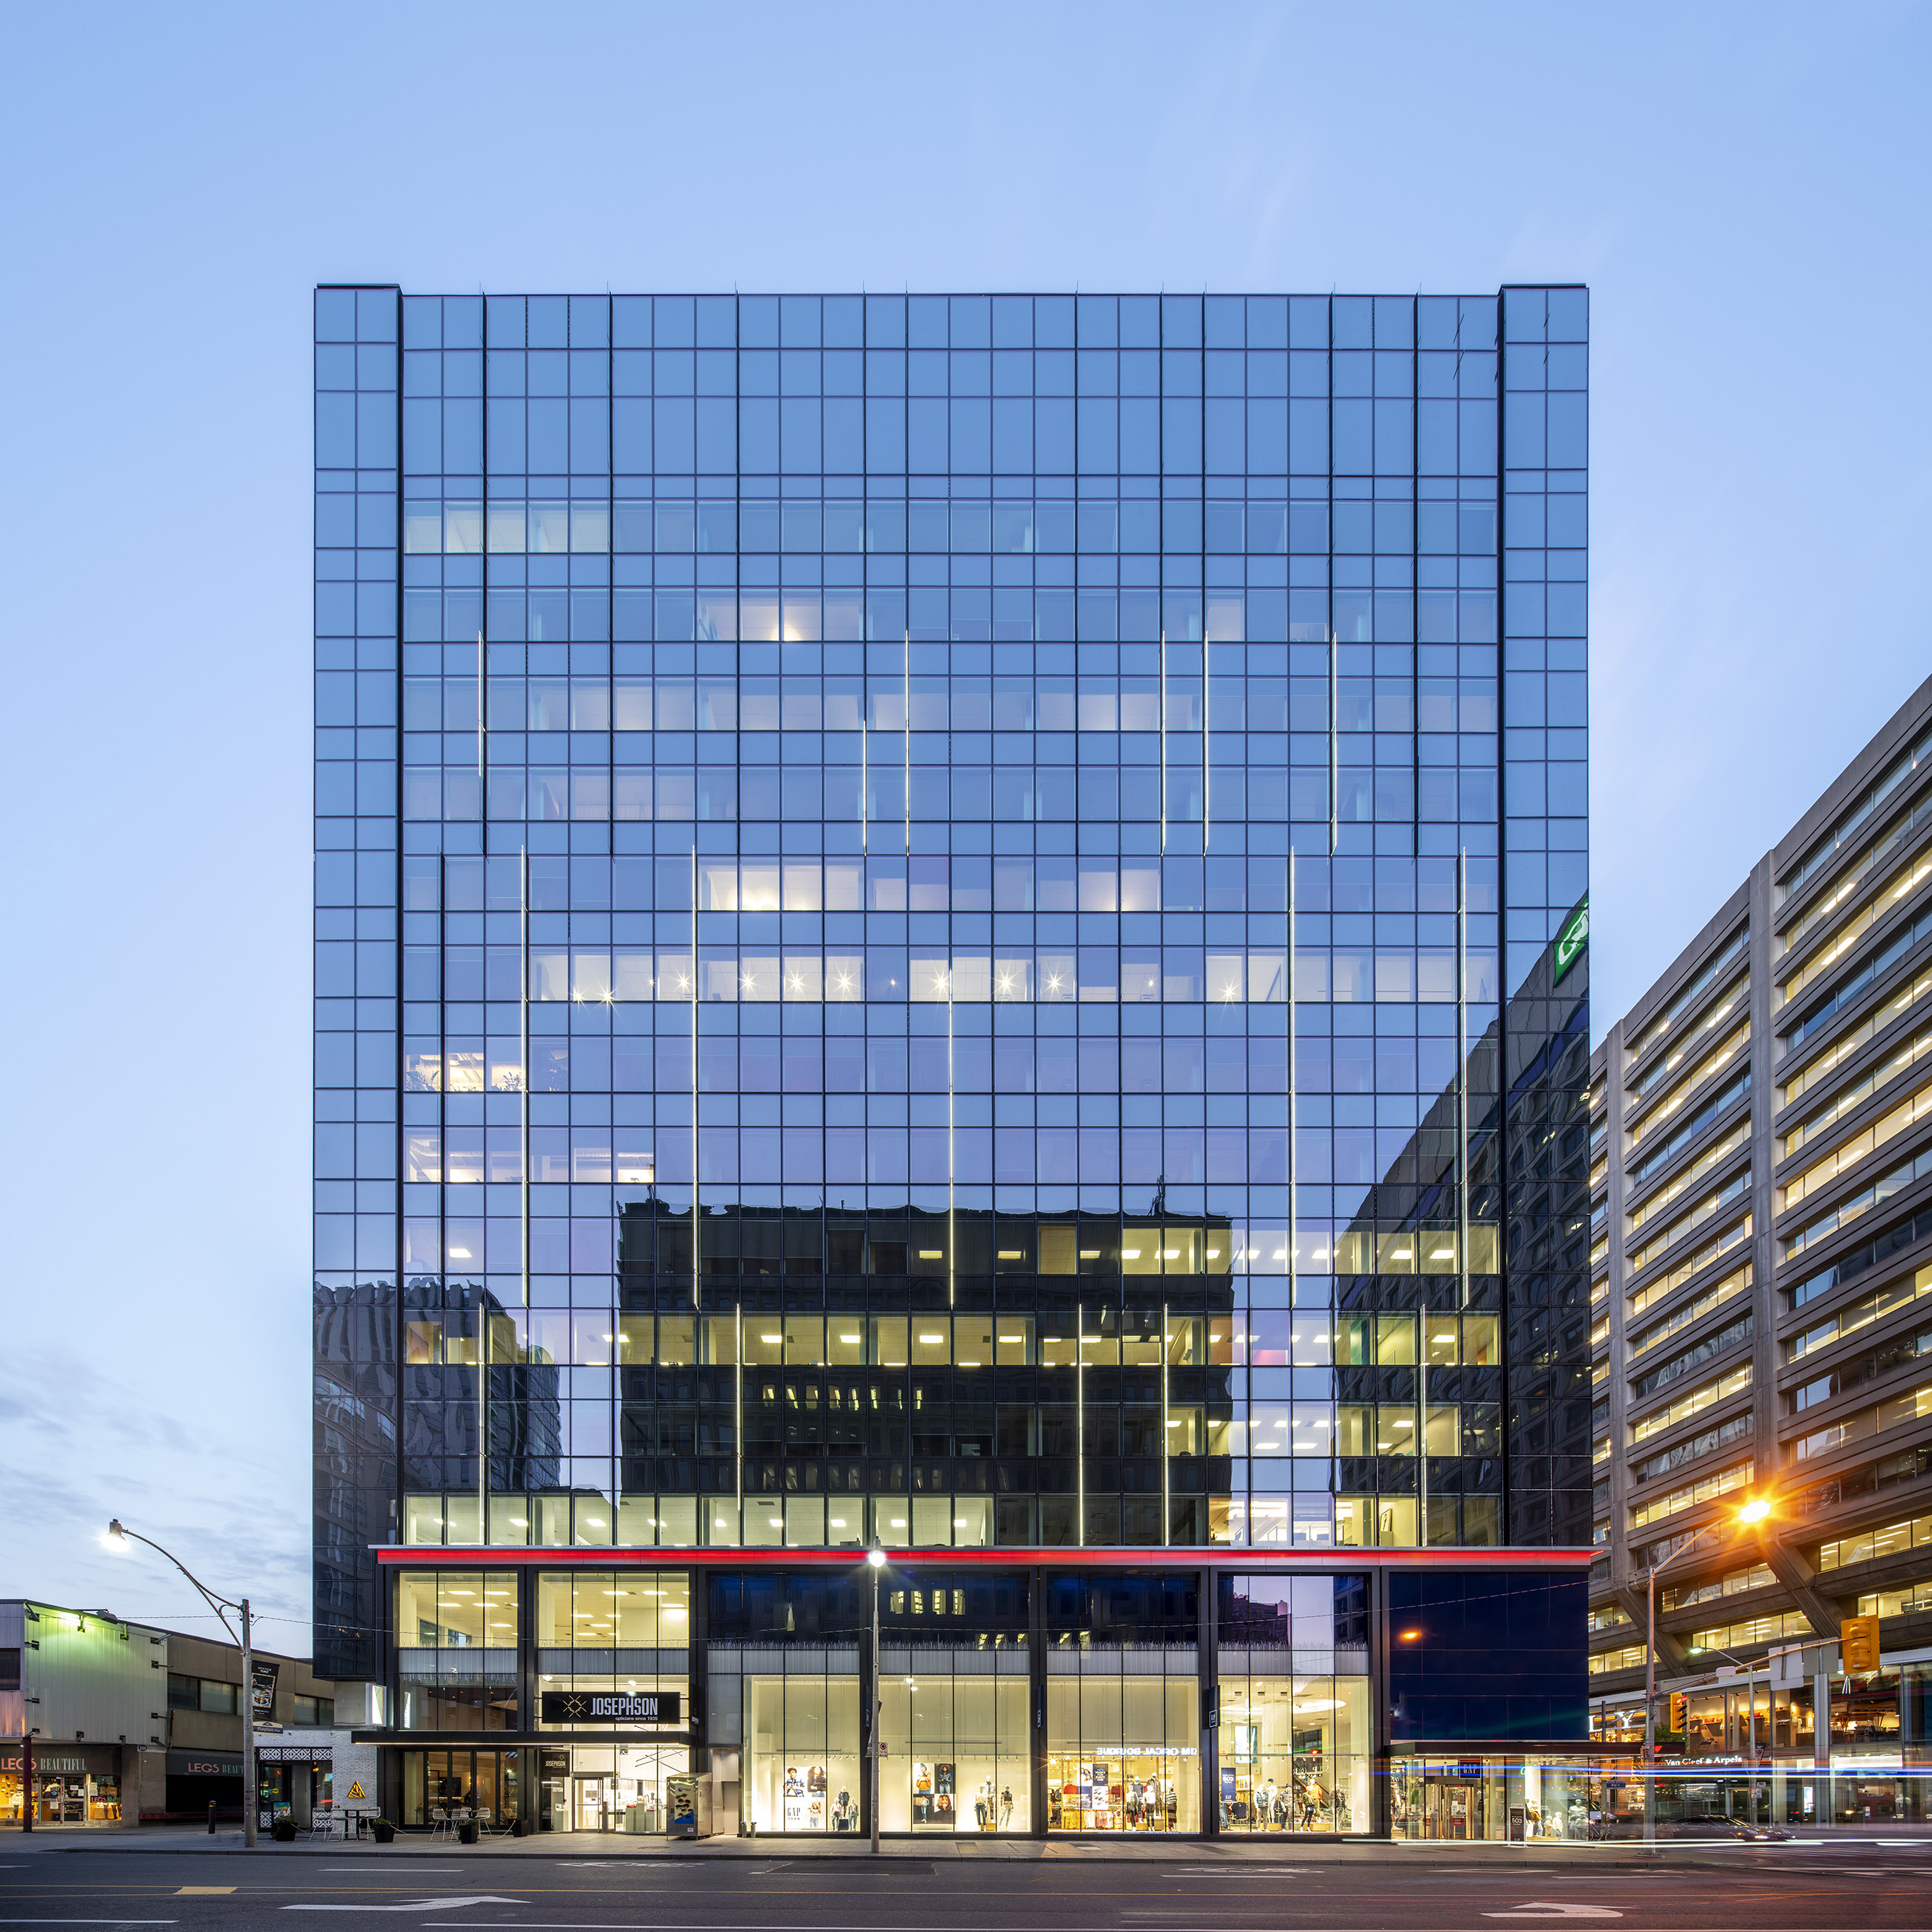 60 Bloor West, Toronto, renovations designed by B+H Architects for Morguard